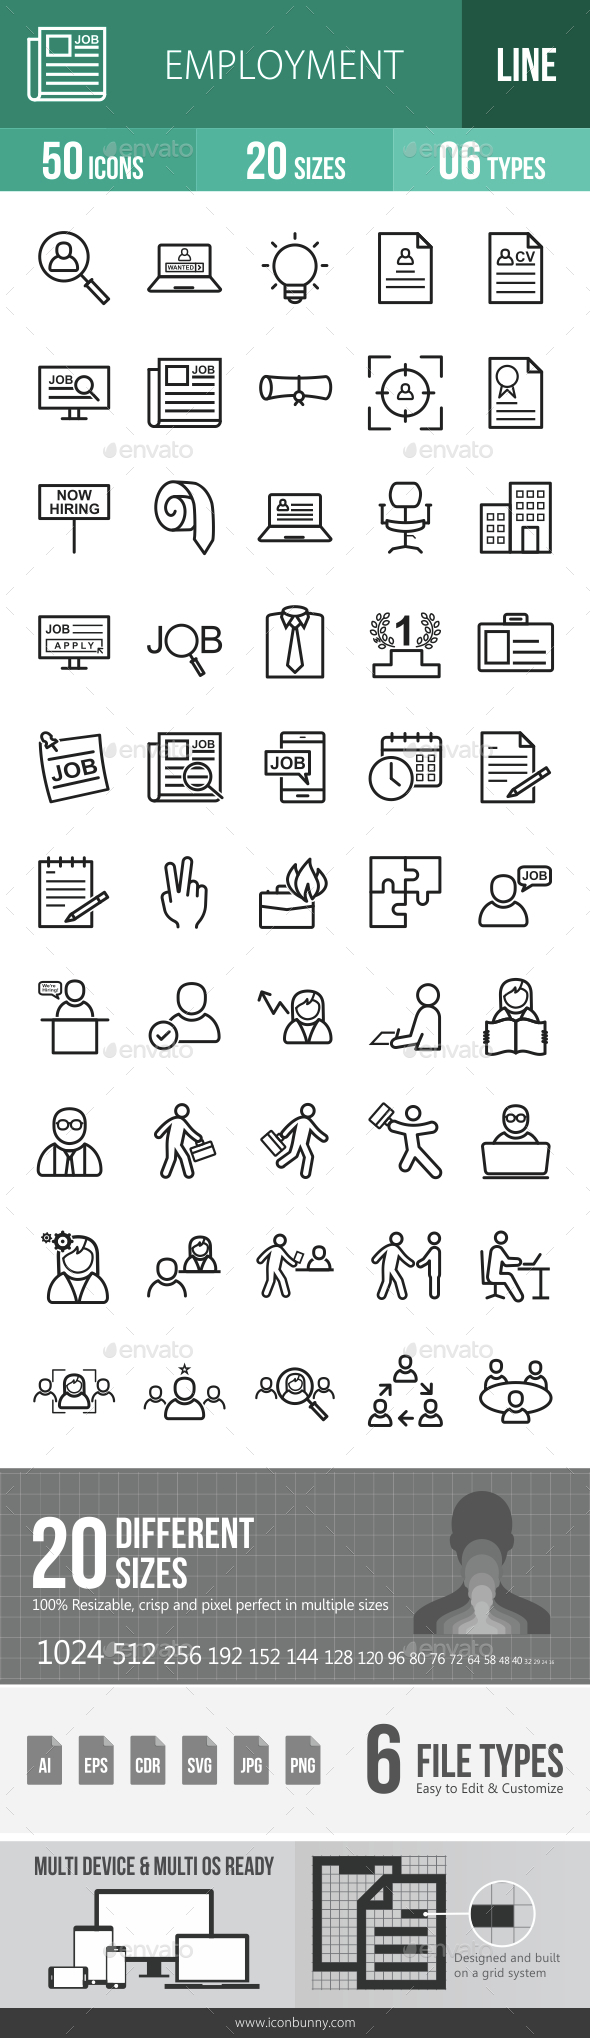 Employment Line Icons